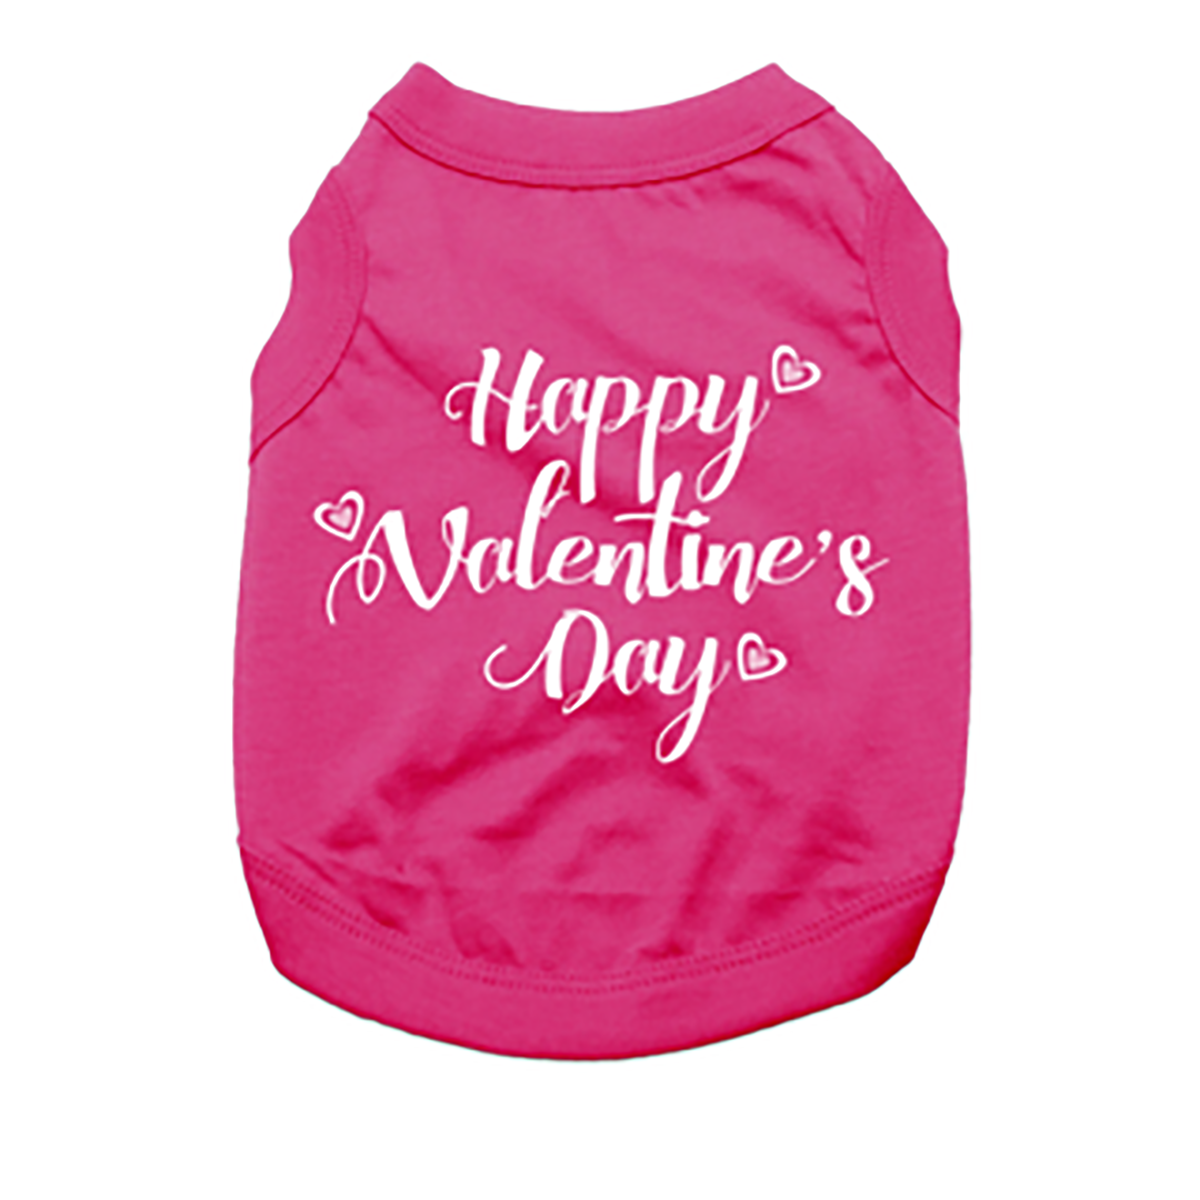 Happy Valentine's Day Dog Shirt - Bright Pink